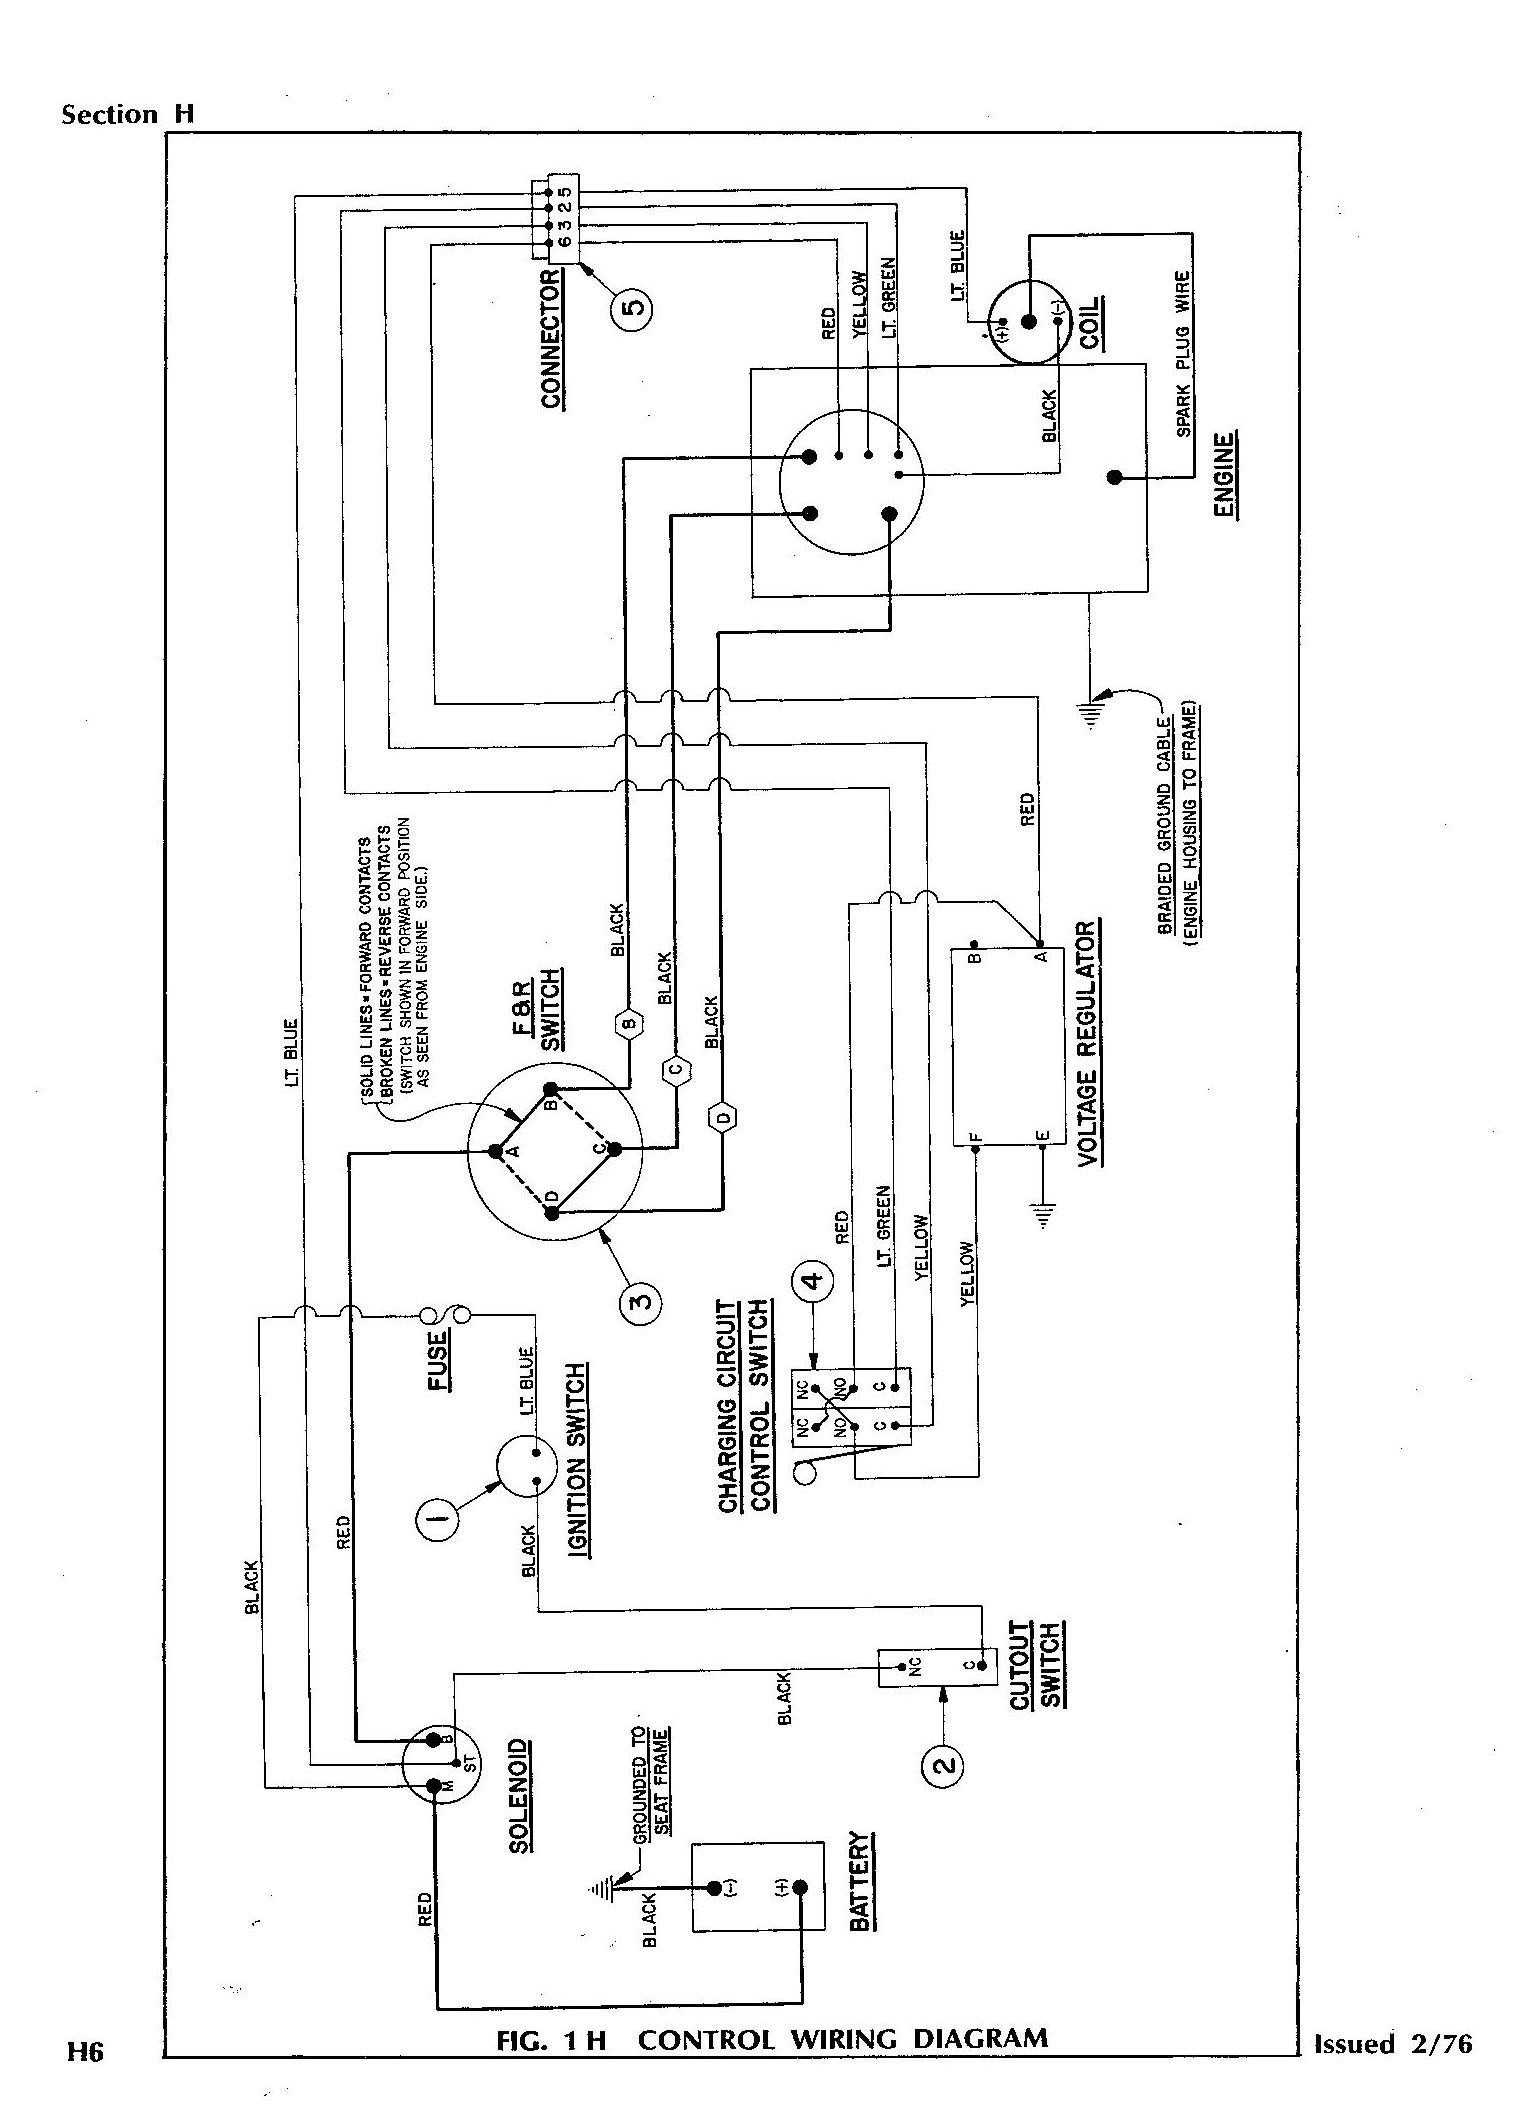 Wiring Diagrams For Yamaha Golf Carts Best Ez Go Gas Golf Cart